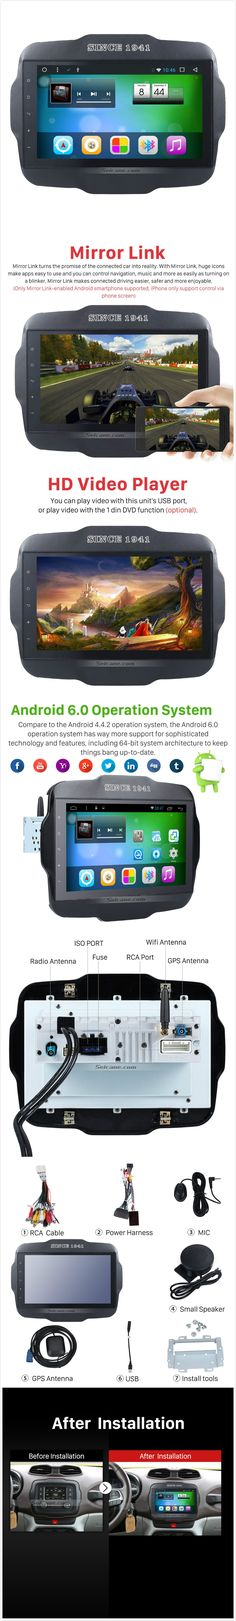 9 inch 2016 Jeep RENEGADE High Version with Capacitive Touch Screen Android 6.0 Radio GPS Navigation System 3G WIFI Bluetooth Mirror Link Steering Wheel Control Tpms DVR AUX OBD2 Rear Camera